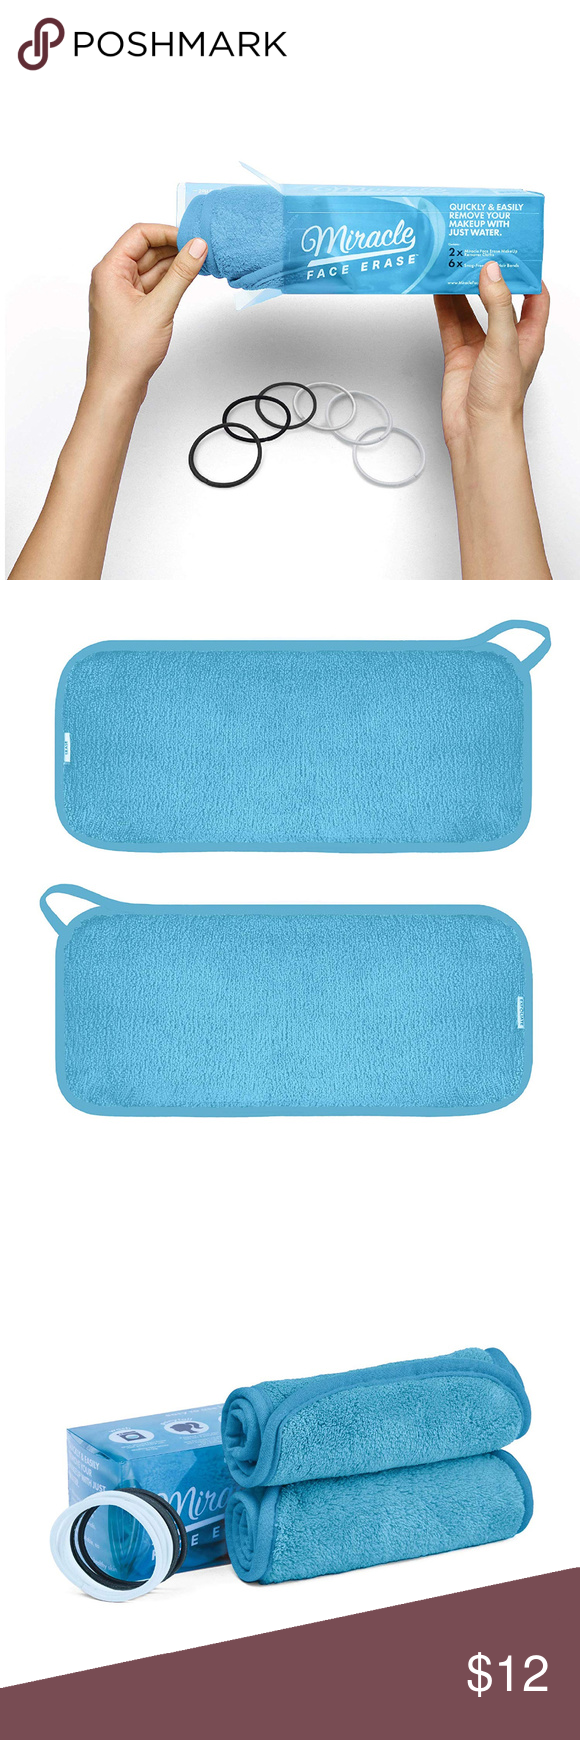 2Pack Blue Microfiber Makeup Remover Remove makeup from